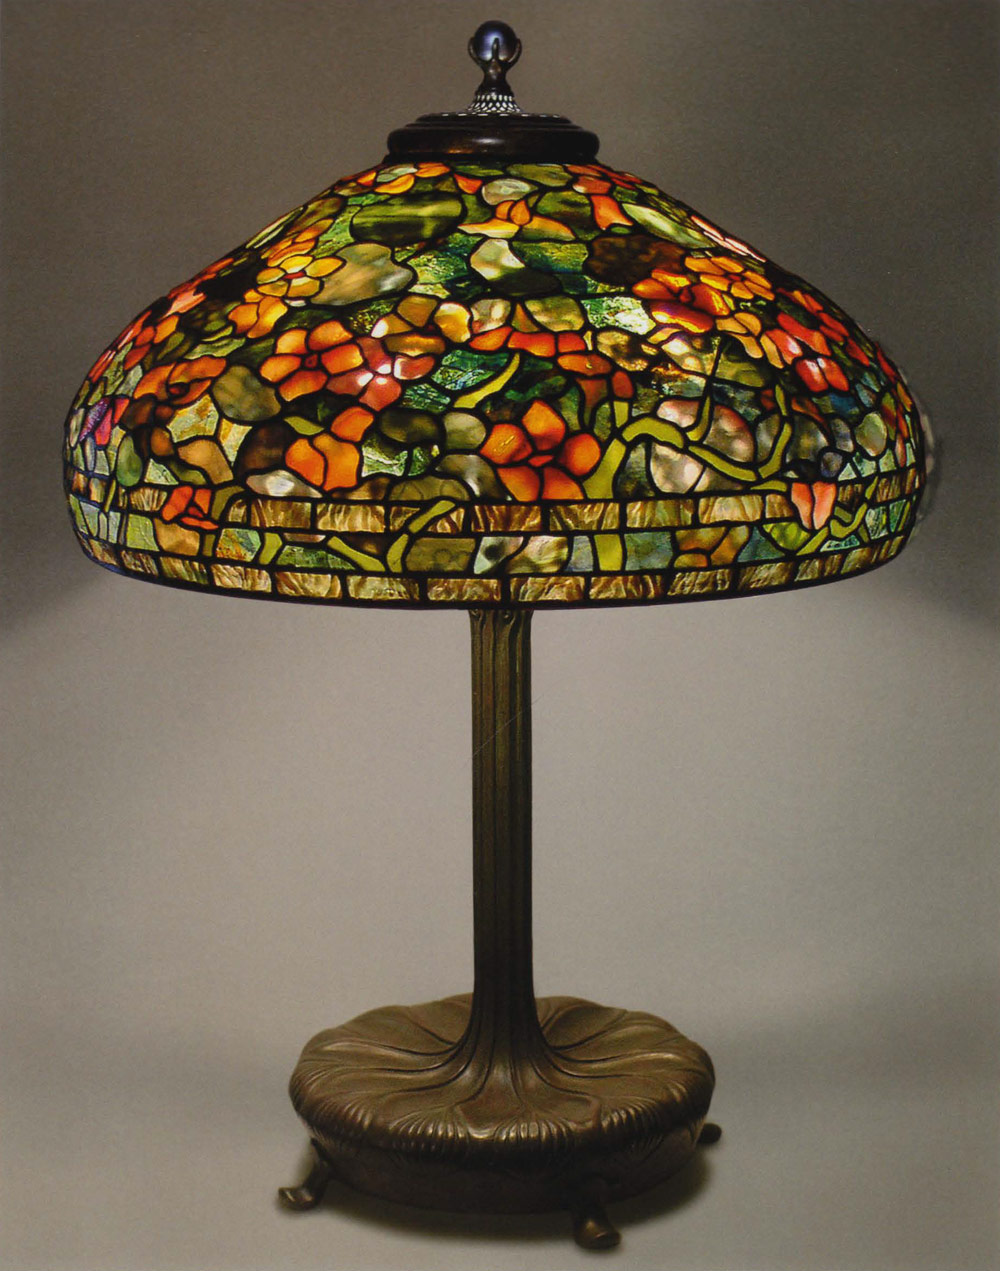 Tiffany studios techniques featured artist the completed lampshade is a 22 nasturtium tiffany studios pattern the shade rests on a large library base with a three light cluster inside keyboard keysfo Image collections